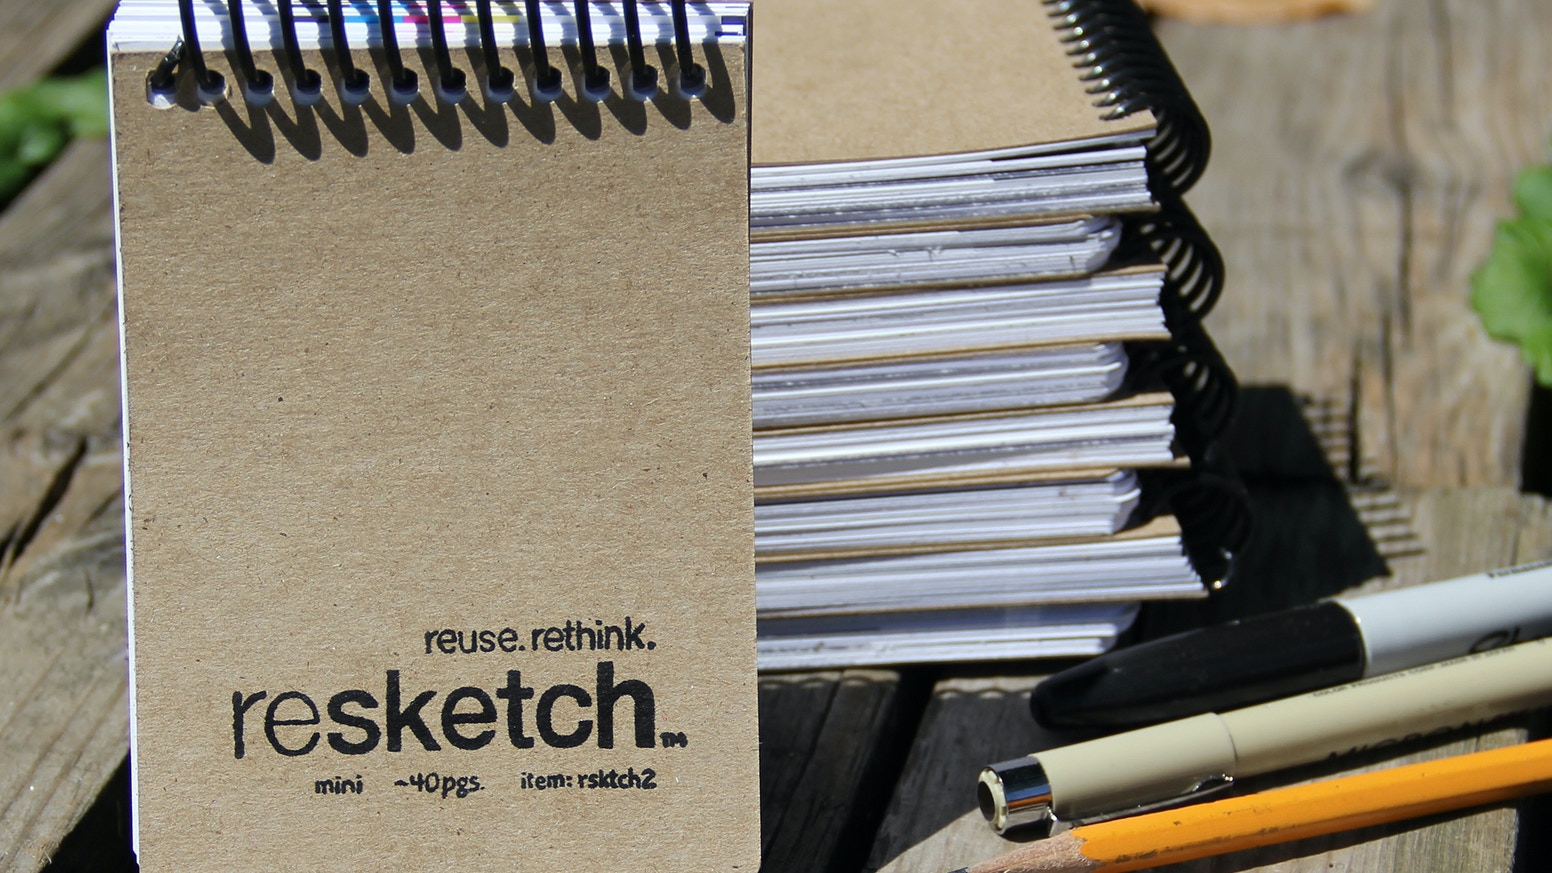 Handy pocket-sized notepads for ideas, sketches, words, and more, made from high-quality reclaimed paper.